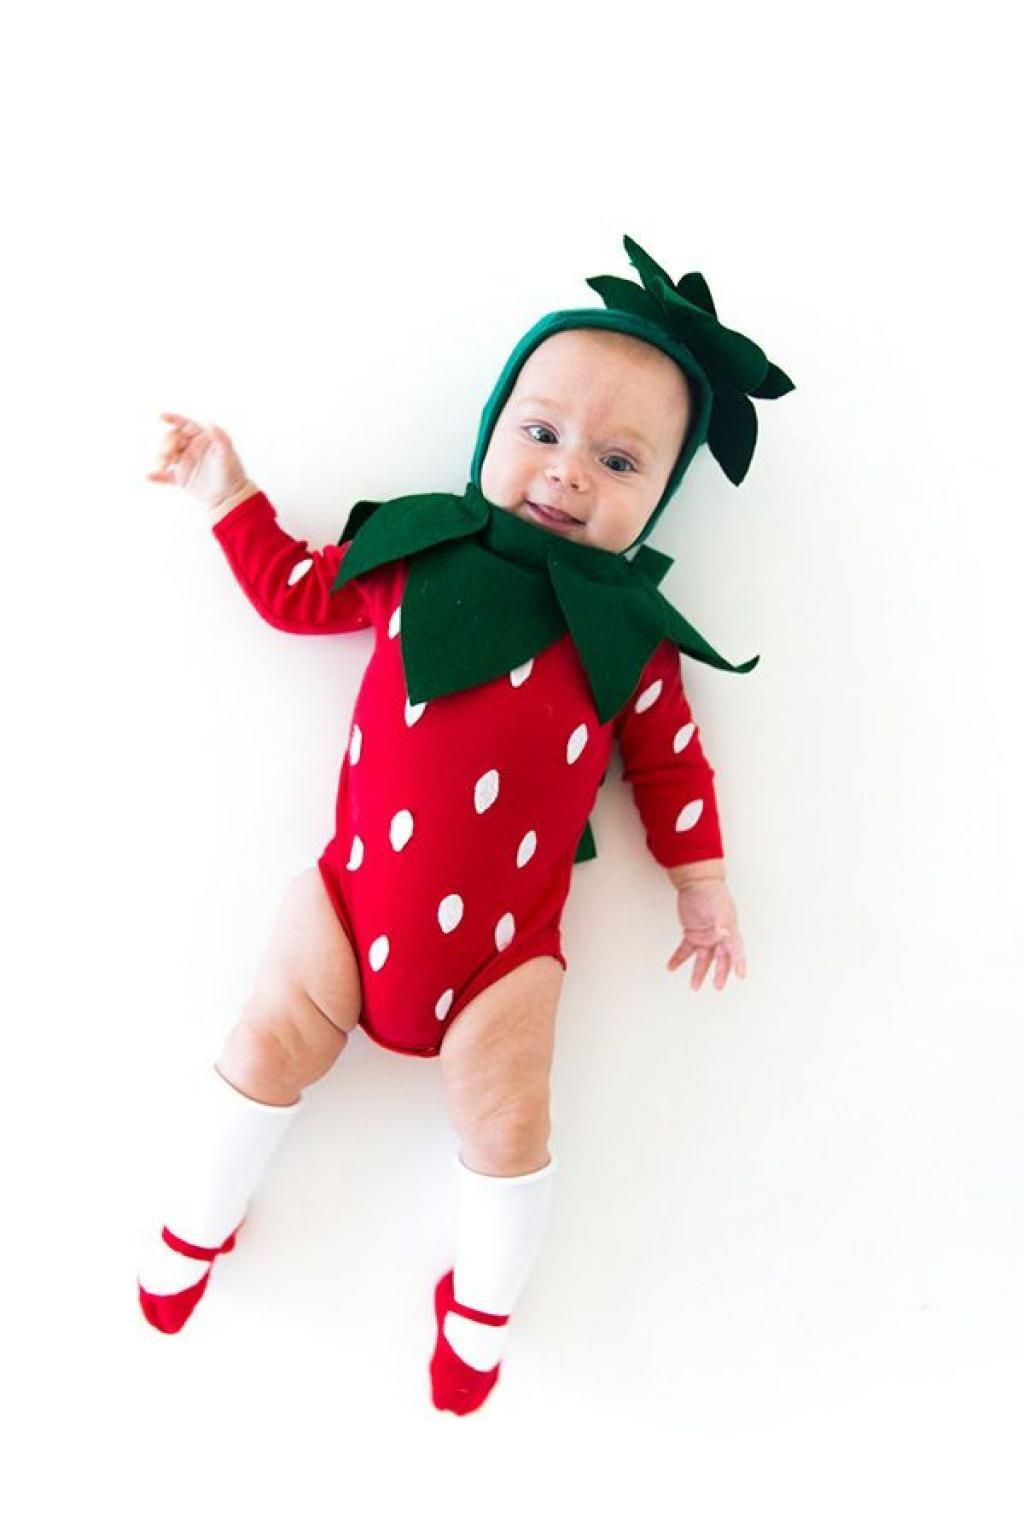 Diy strawberry halloween costume DIY Insanely Cute Baby Halloween Costume Ideas You Can Make This Weekend